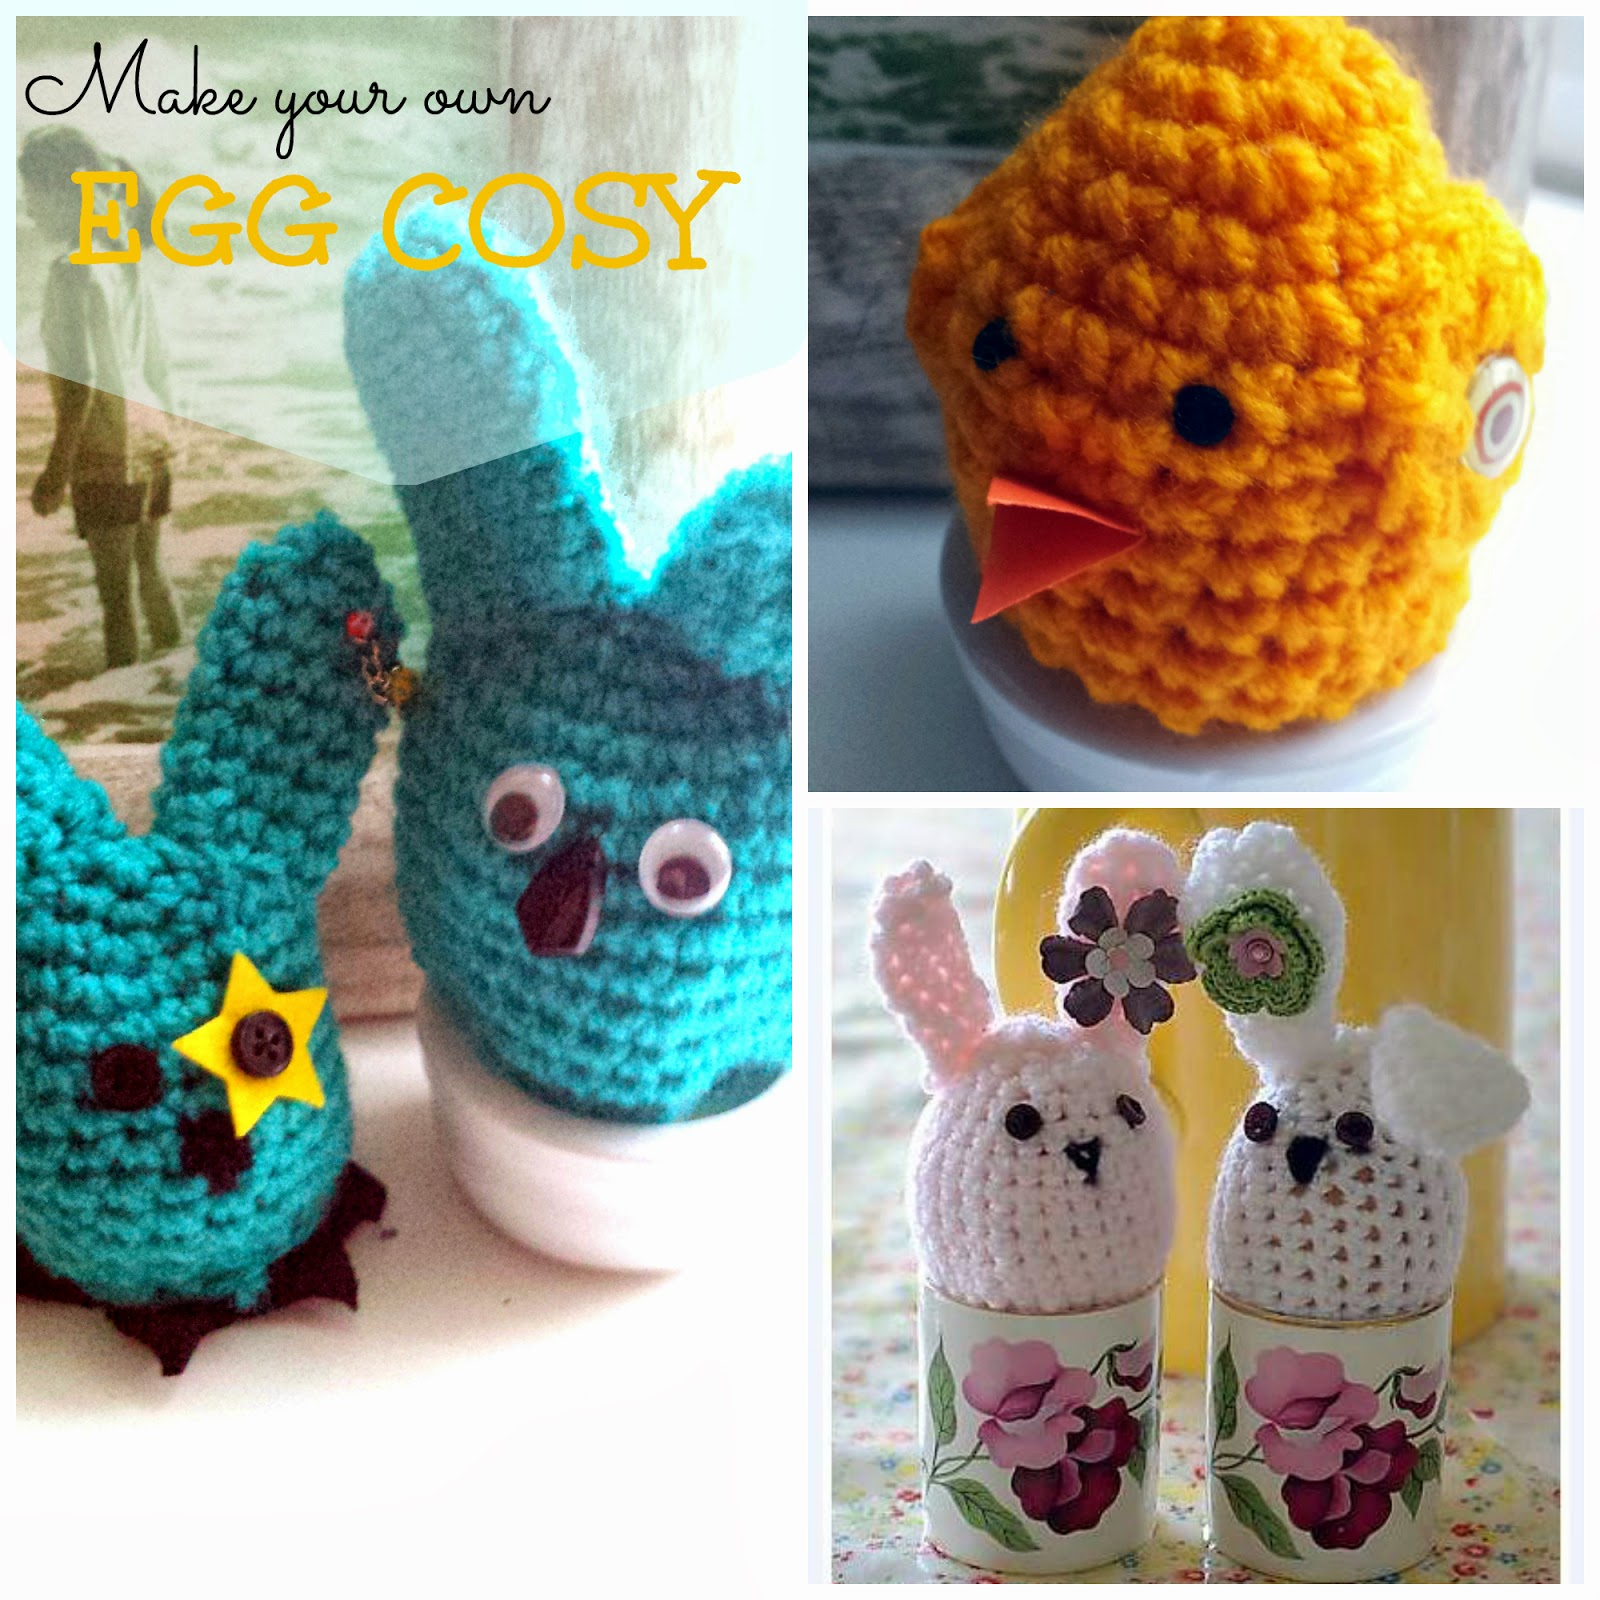 Crochet Bunnies and Chicks Egg cosies